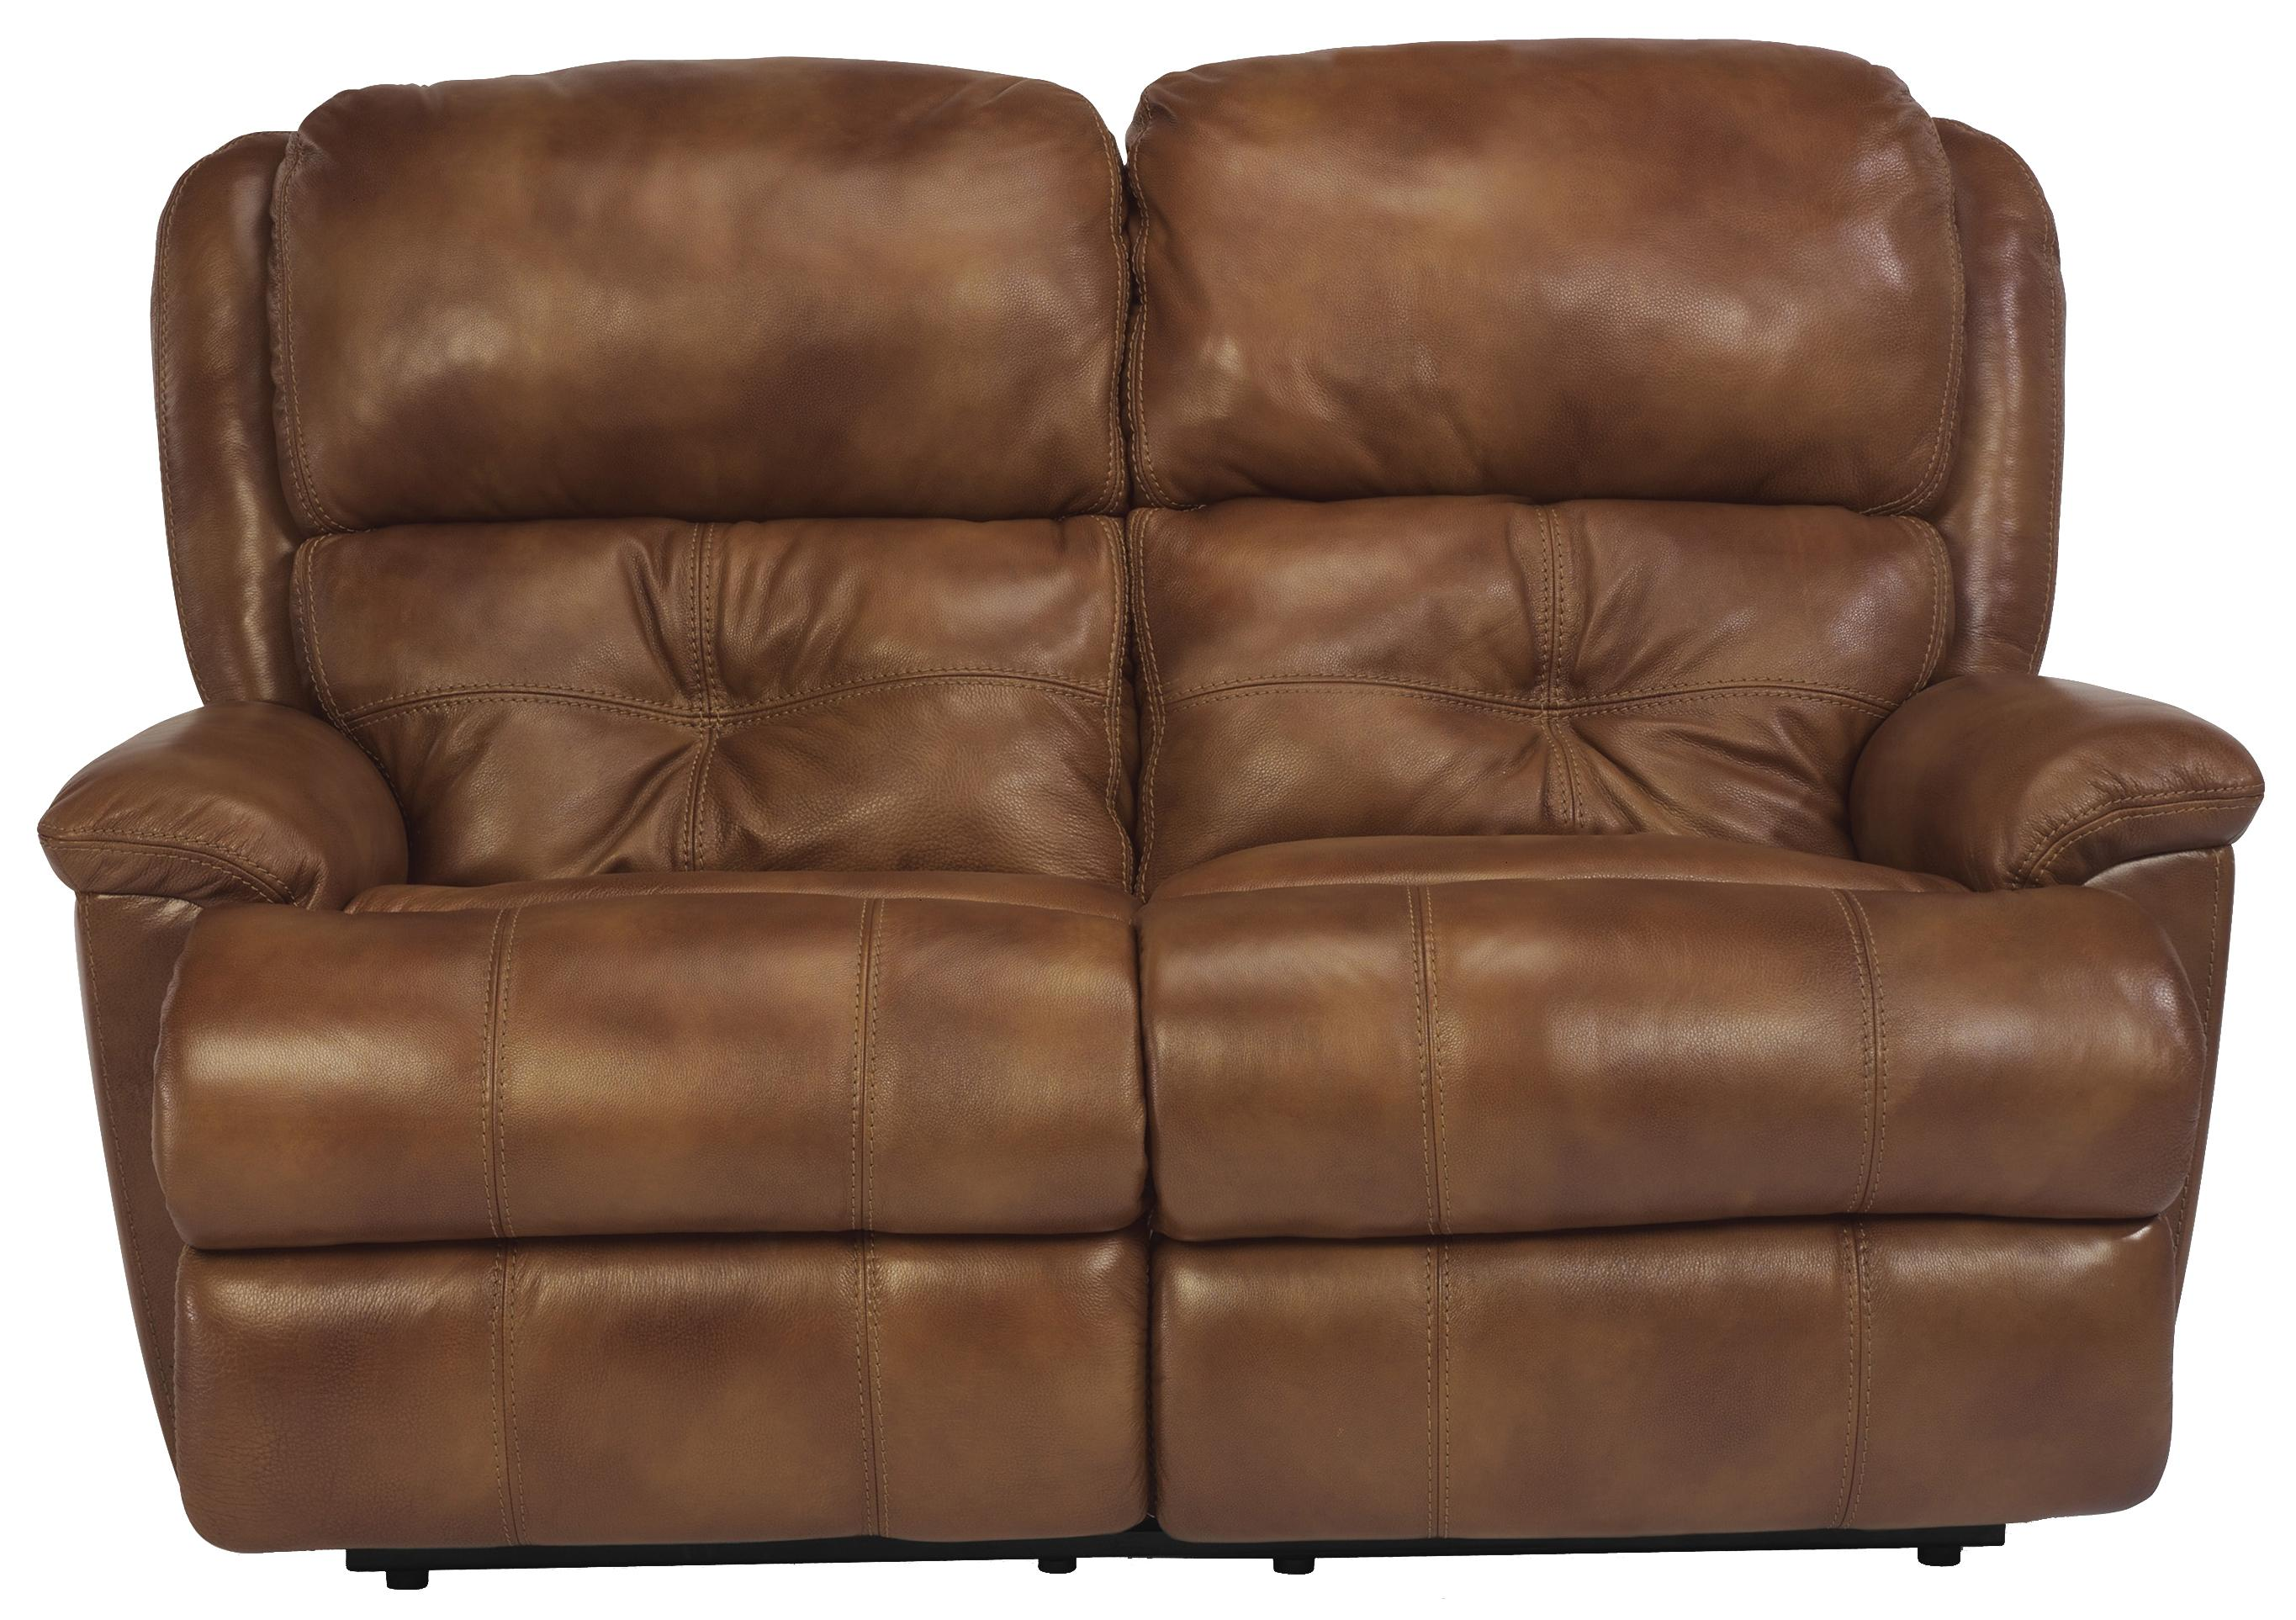 Double Recliner Chair Latitudes Cruise Control Power Reclining Loveseat With Two Recliners For Family Room Comfort By Flexsteel At Goffena Furniture Mattress Center